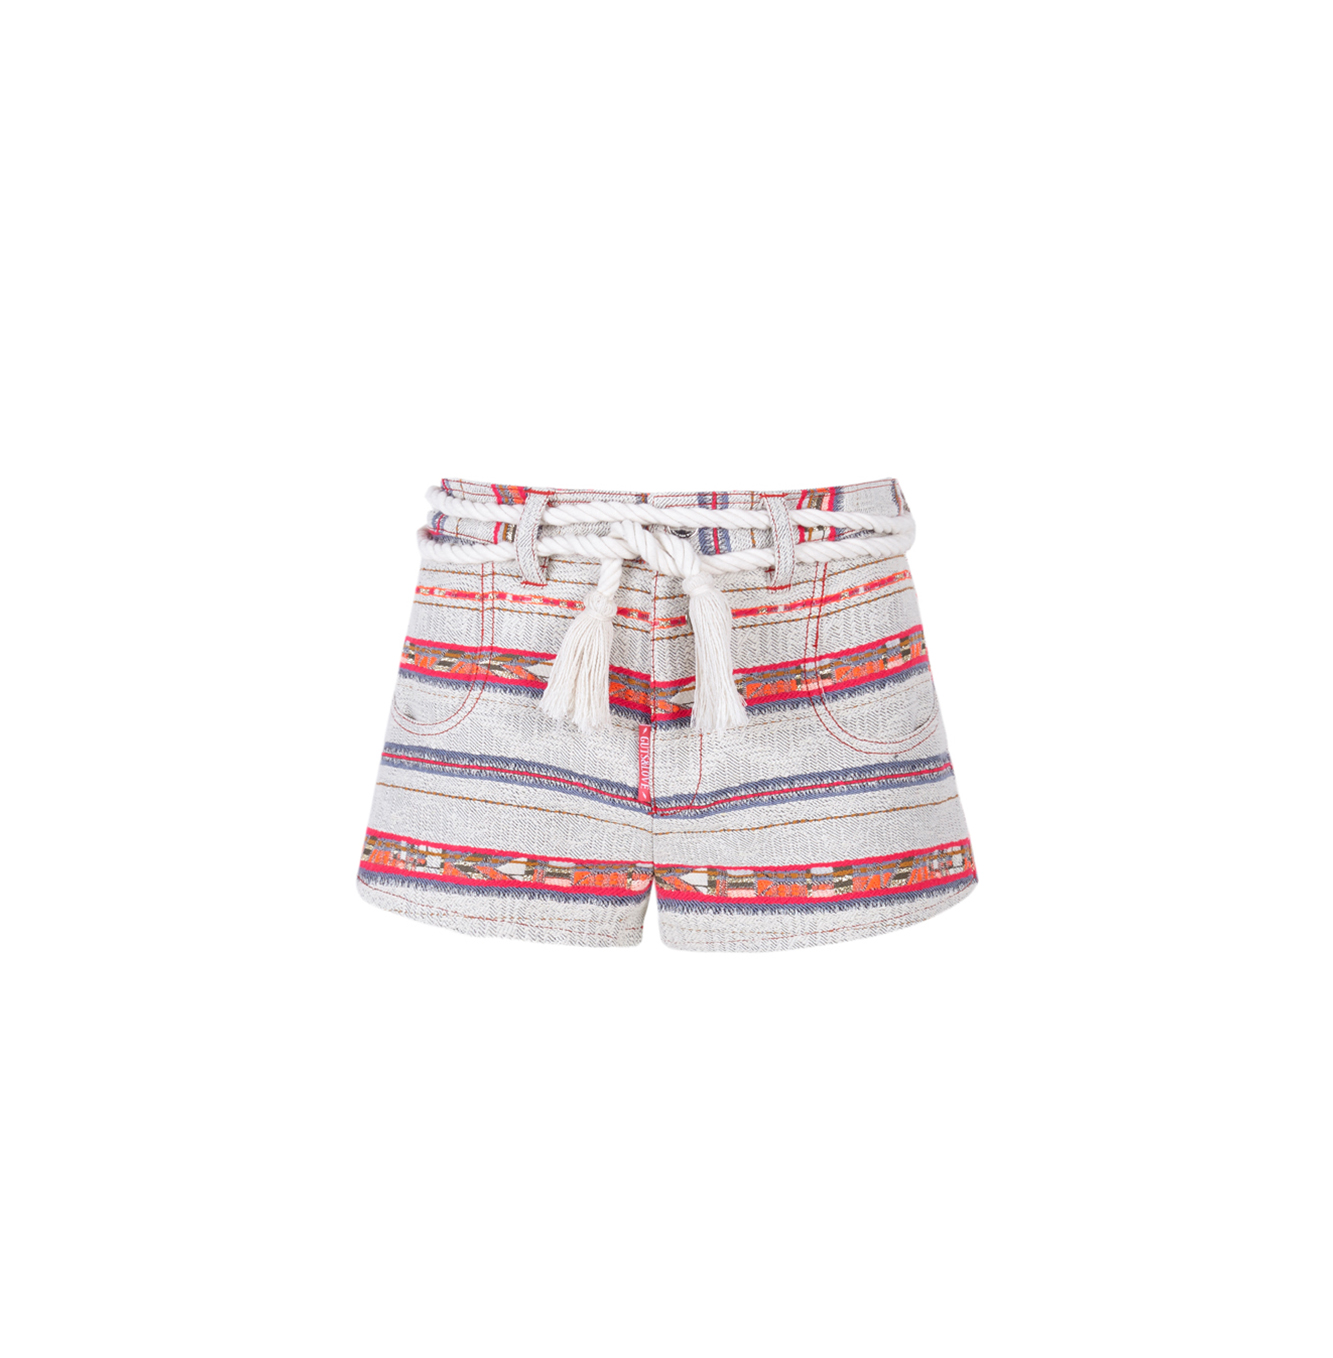 Short Arizona verano 21 Guts&Love